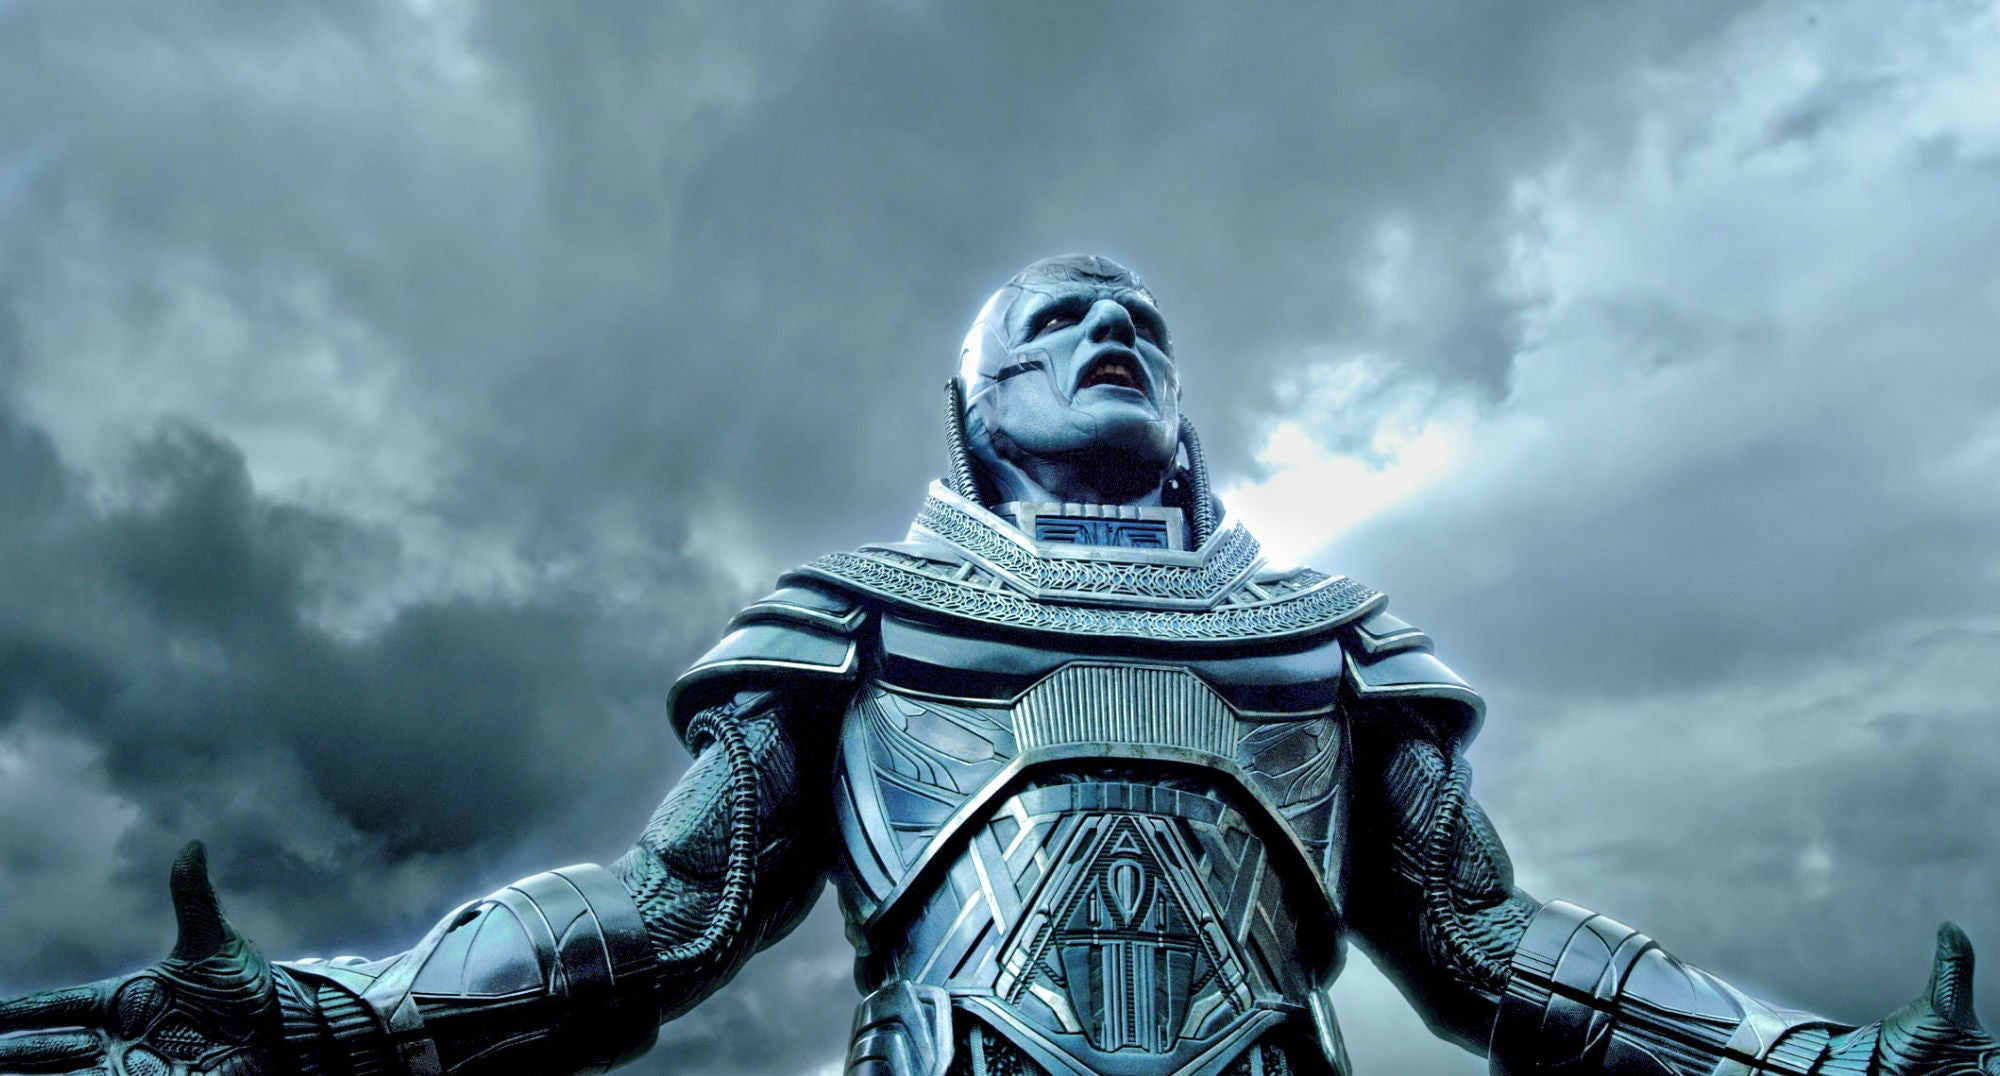 bryan-singer io9 movie-review movies simon-kinberg x-men-apocalypse